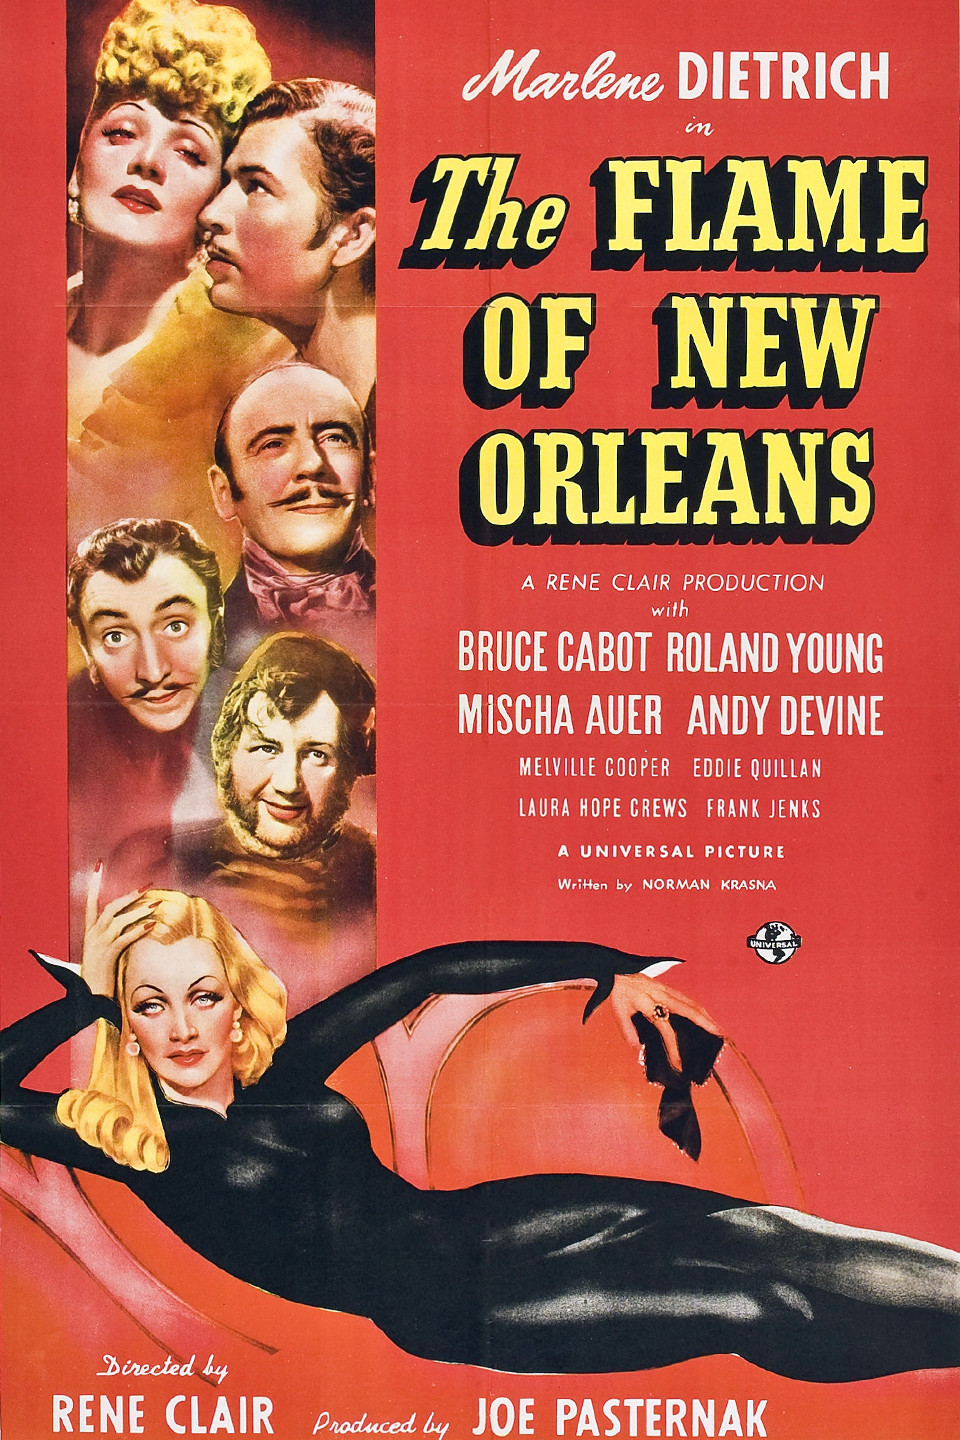 The Flame of New Orleans